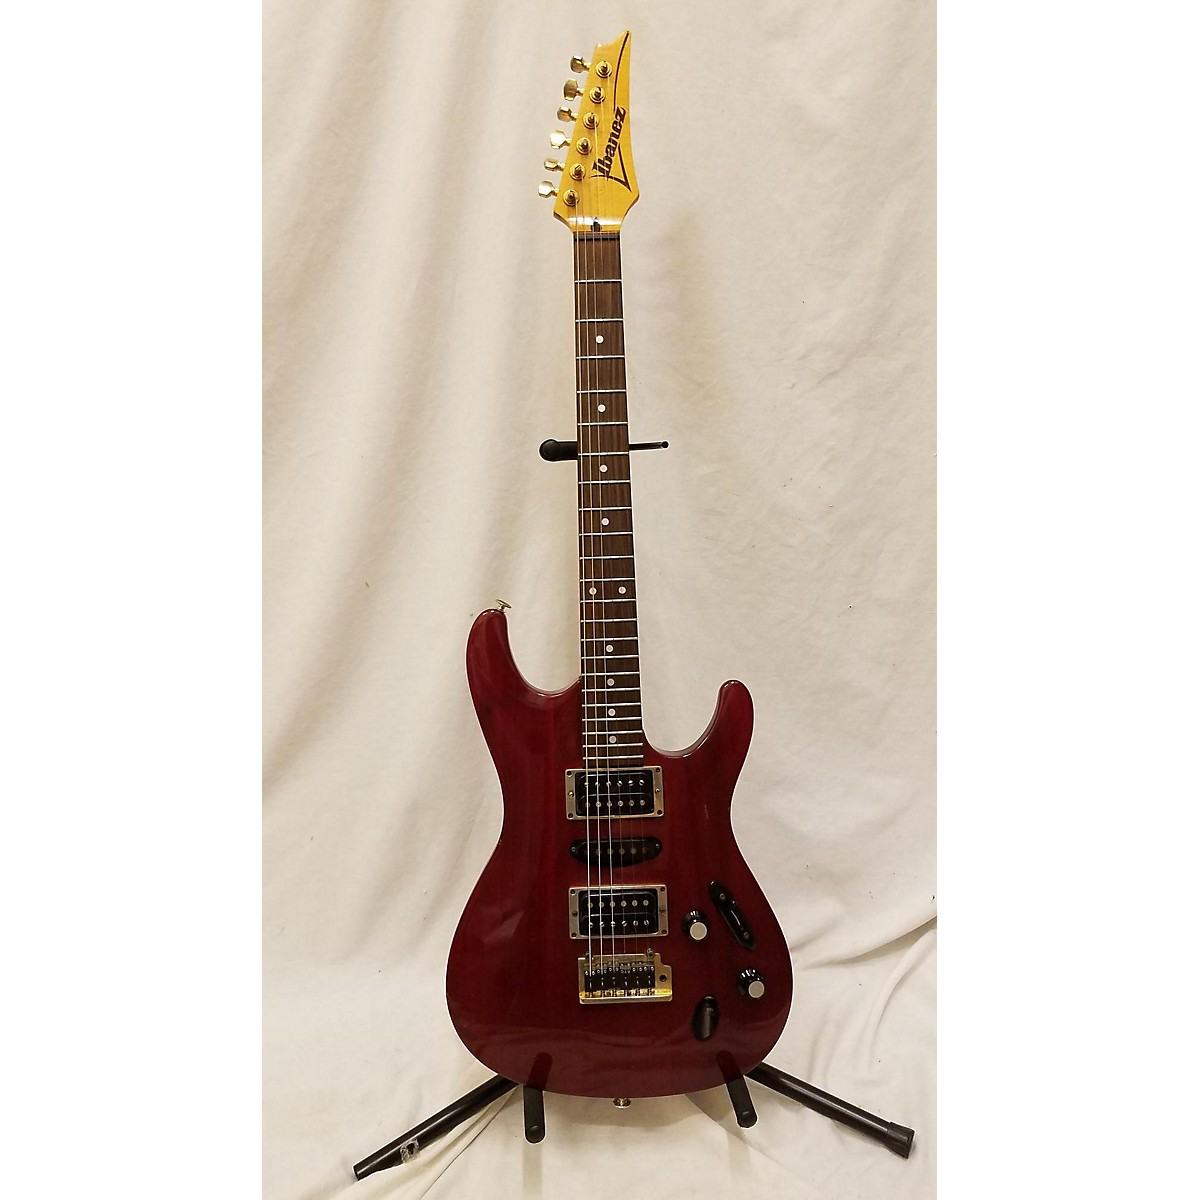 Ibanez SV470 Solid Body Electric Guitar